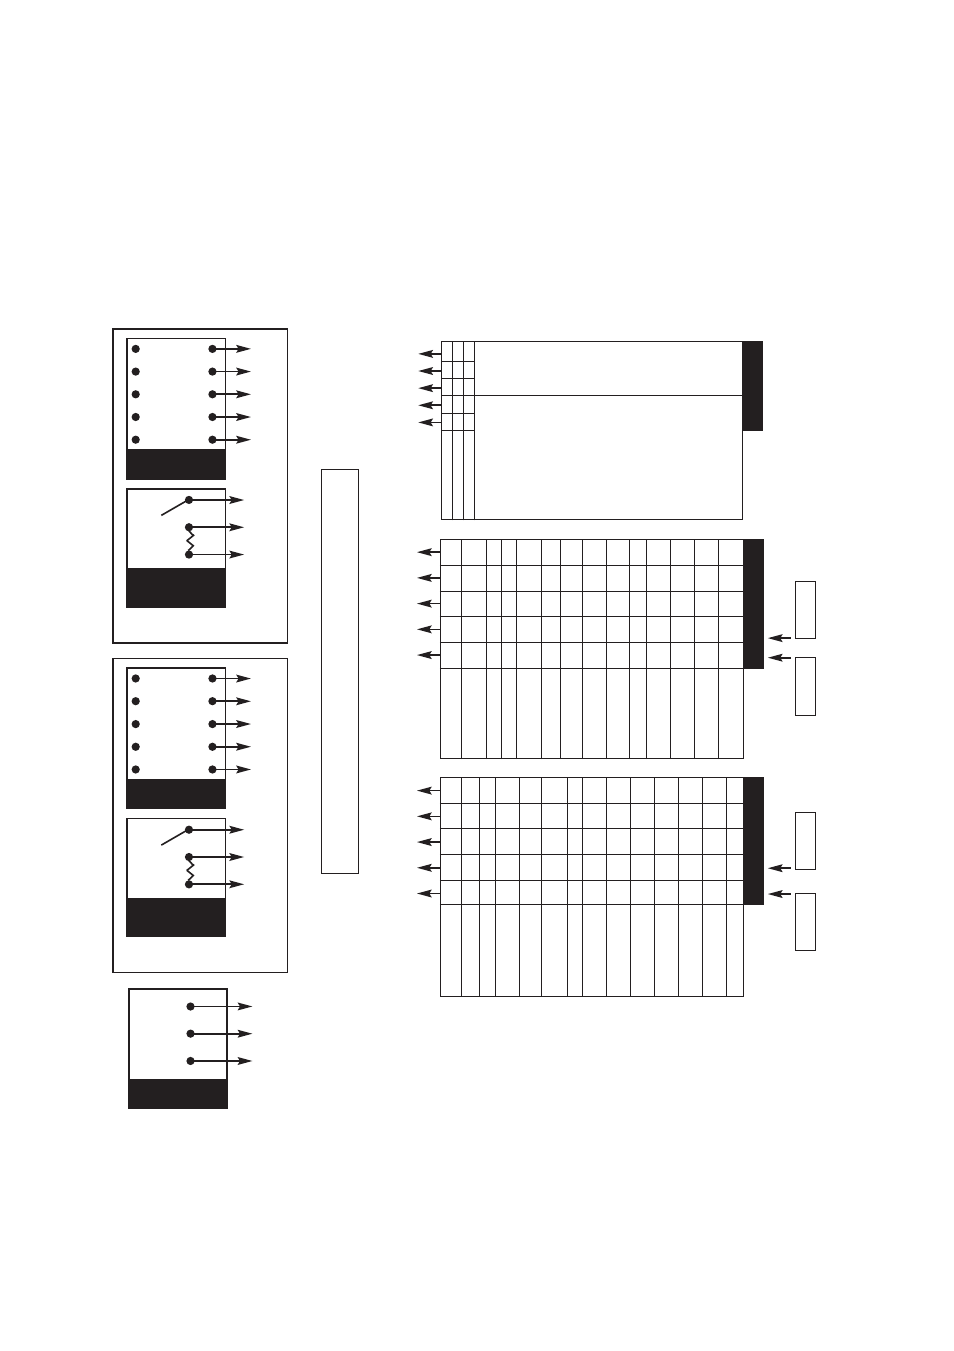 switchmaster mid position valve wiring diagram